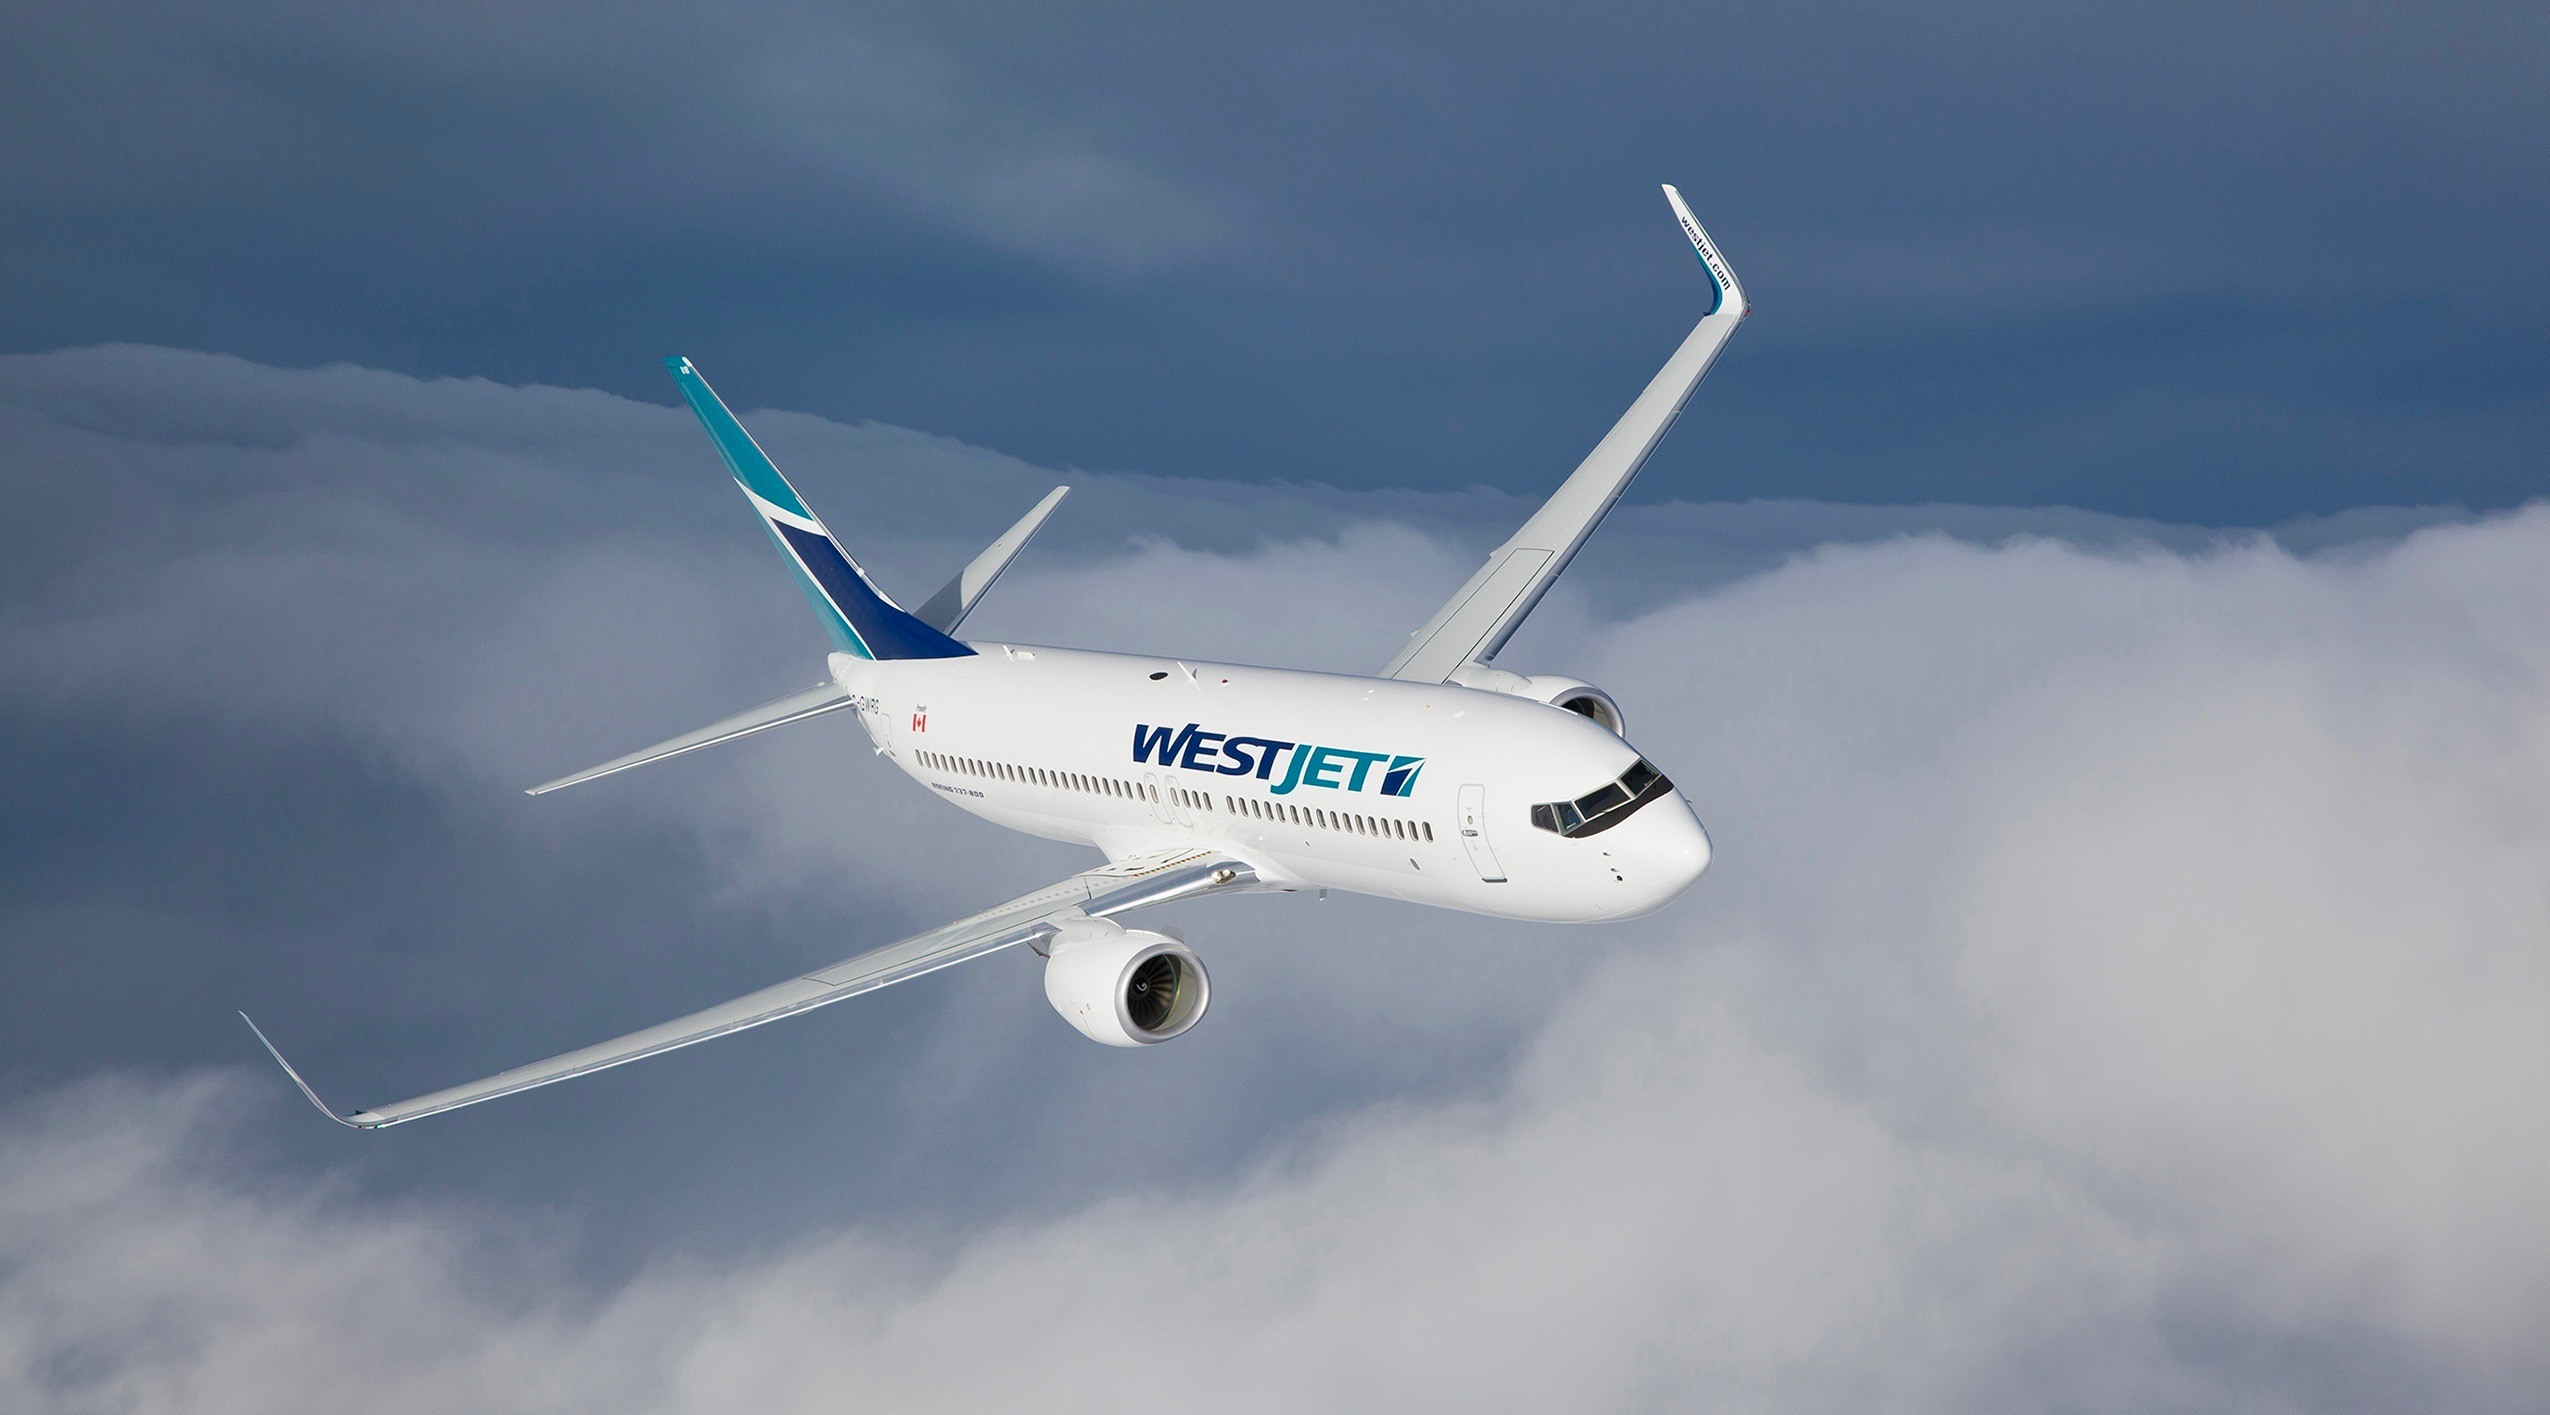 You can now buy WestJet gift cards on their website